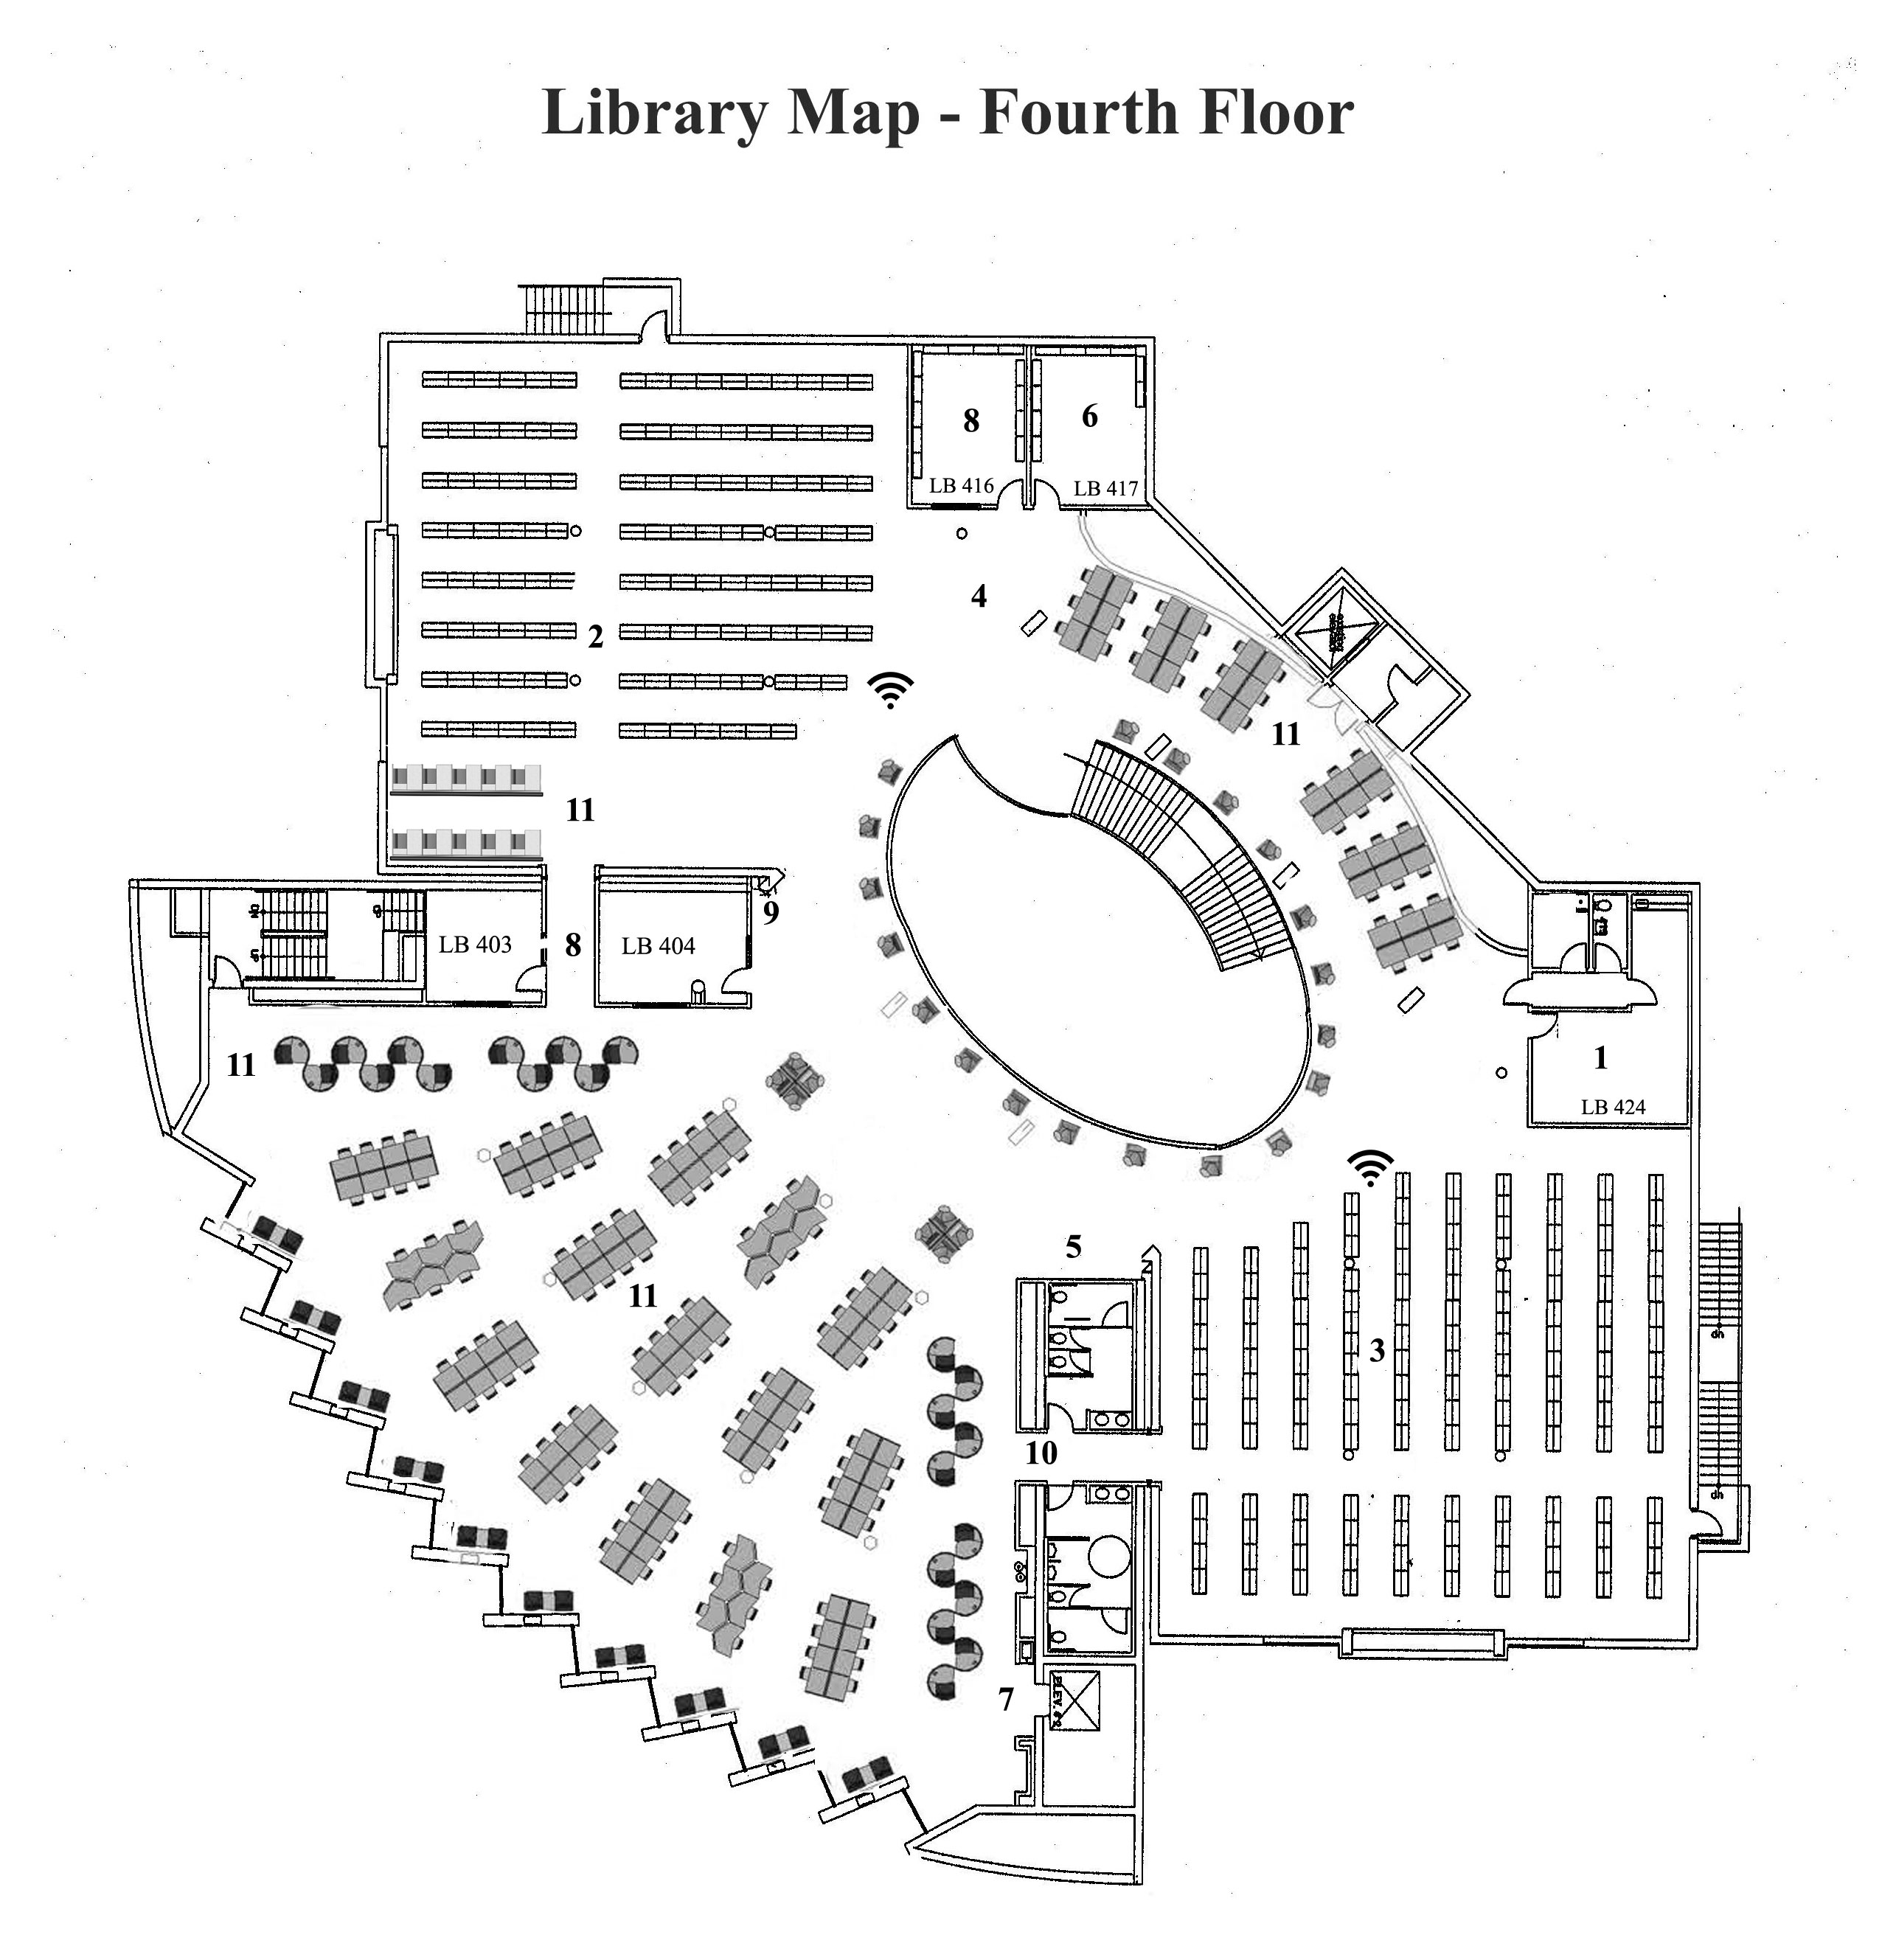 Map of Library 4th floor plan